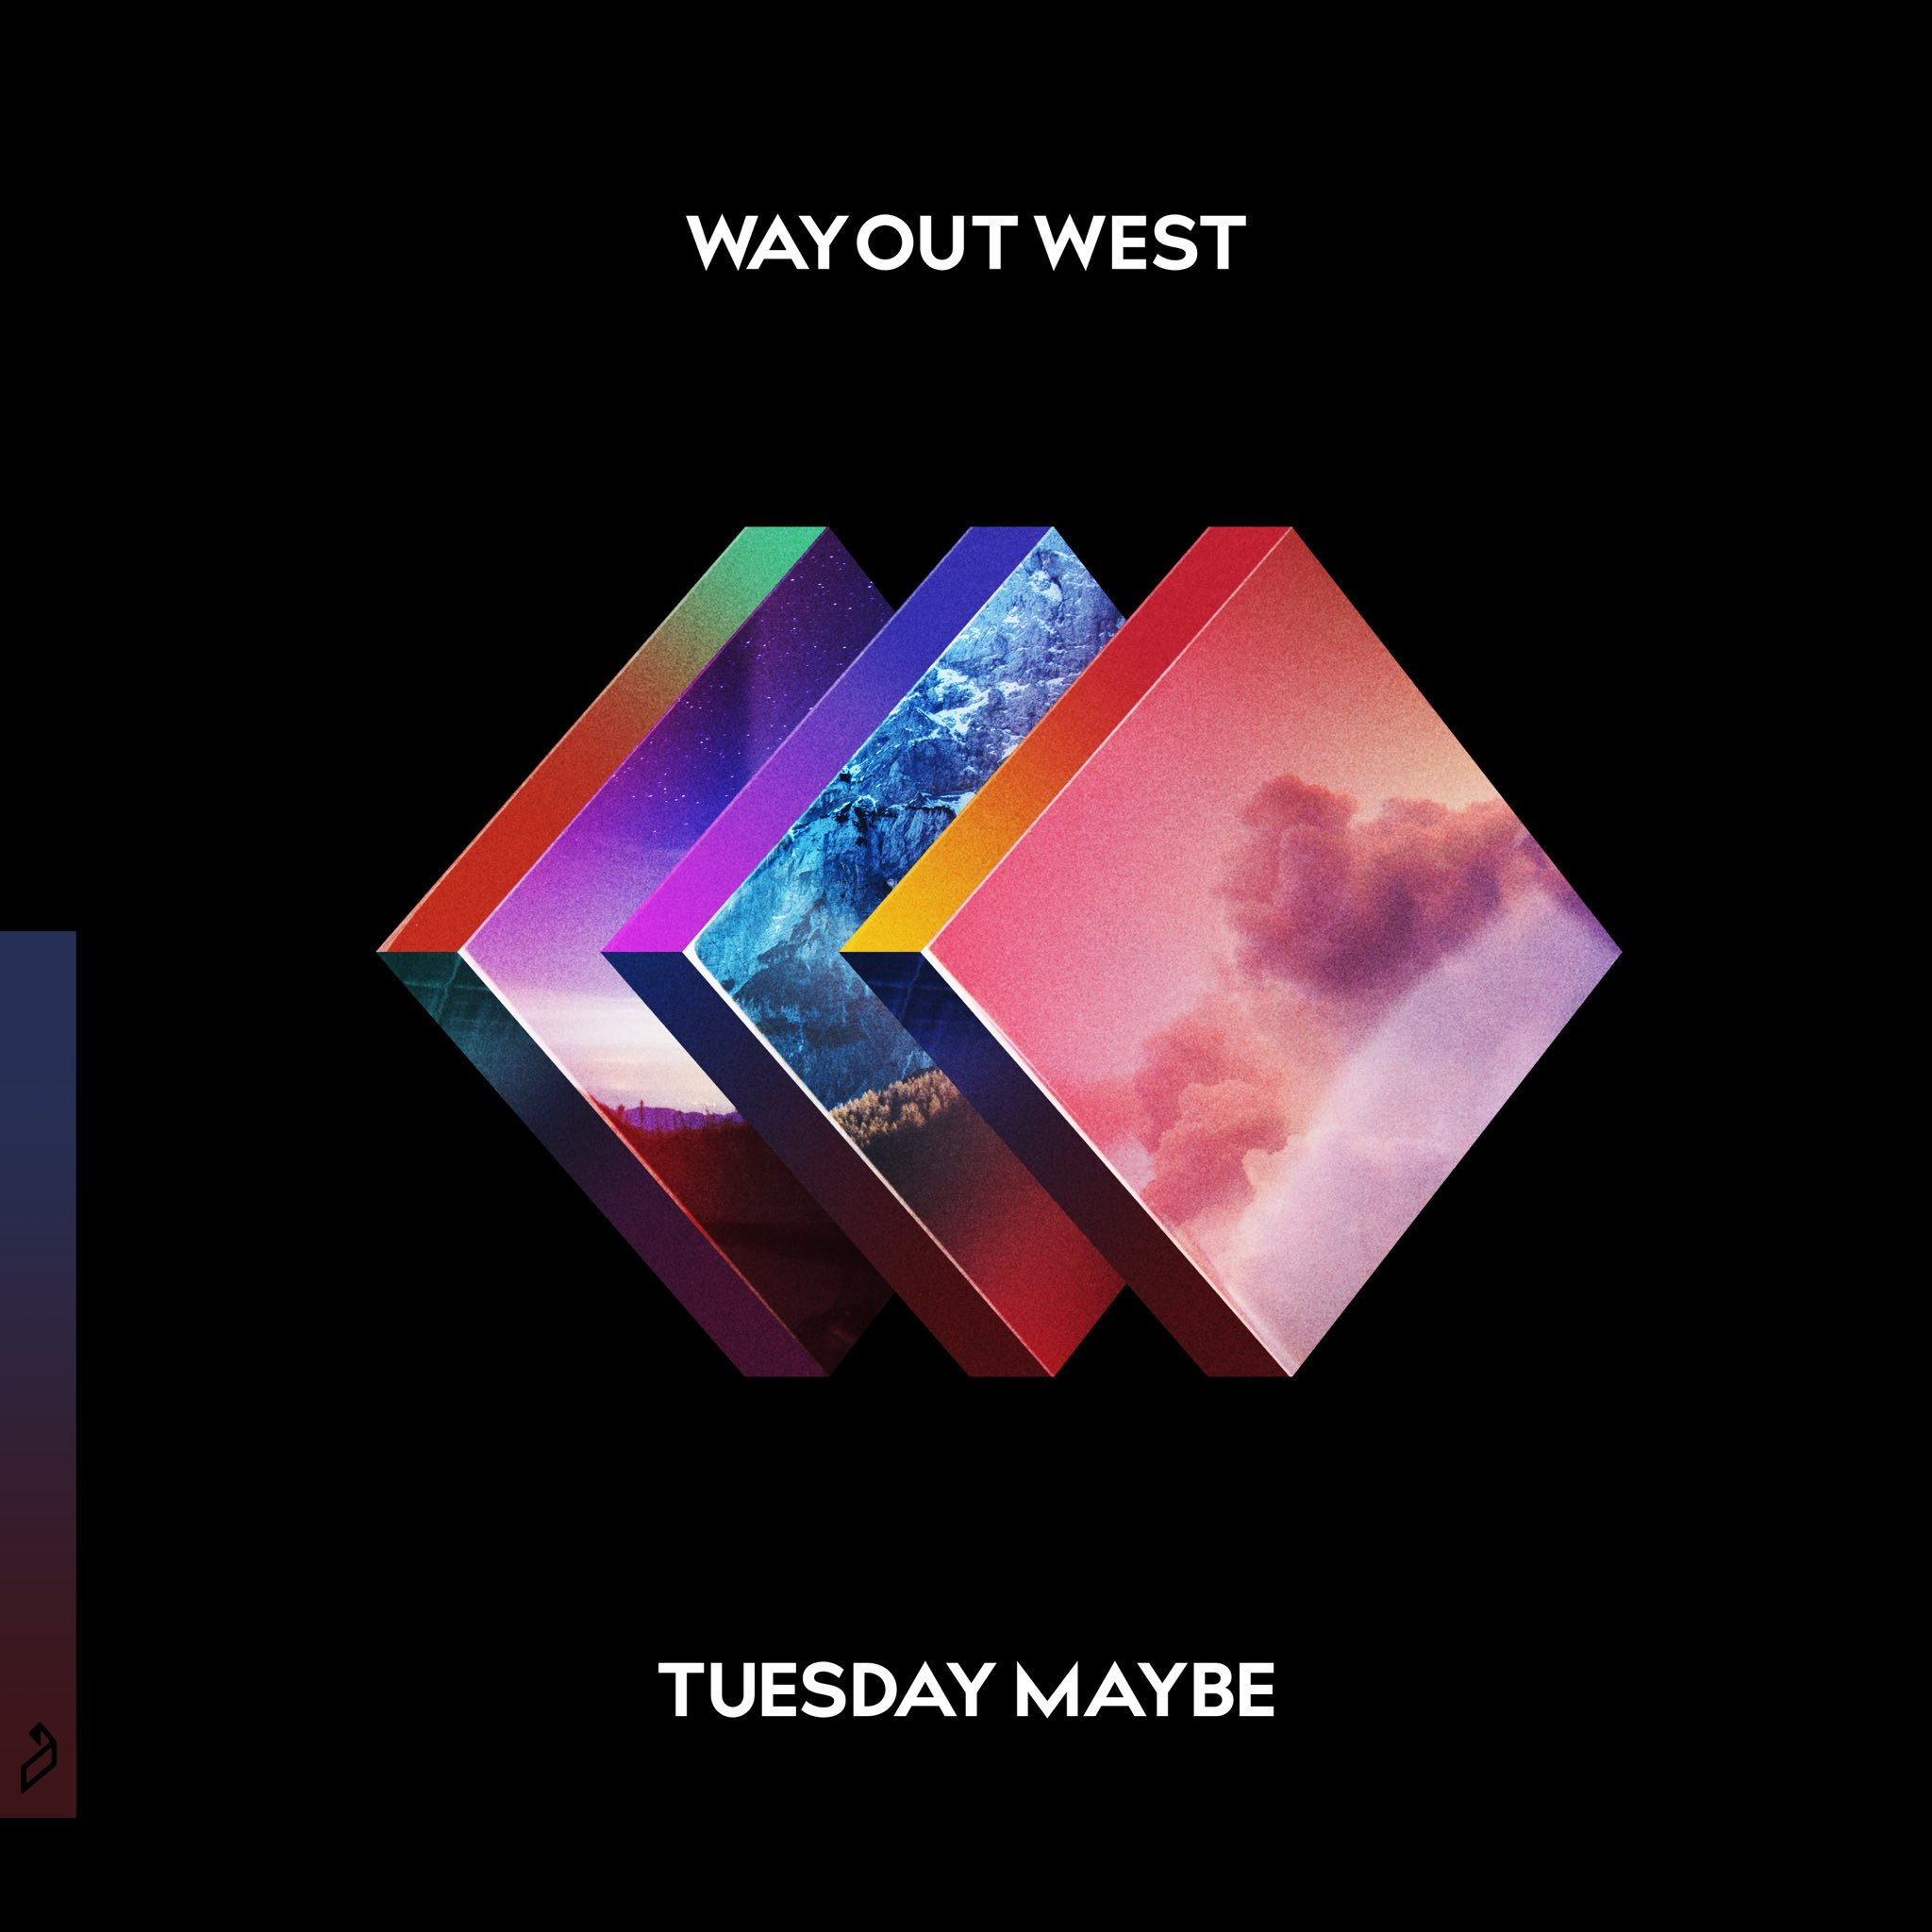 Image result for way out west tuesday maybe